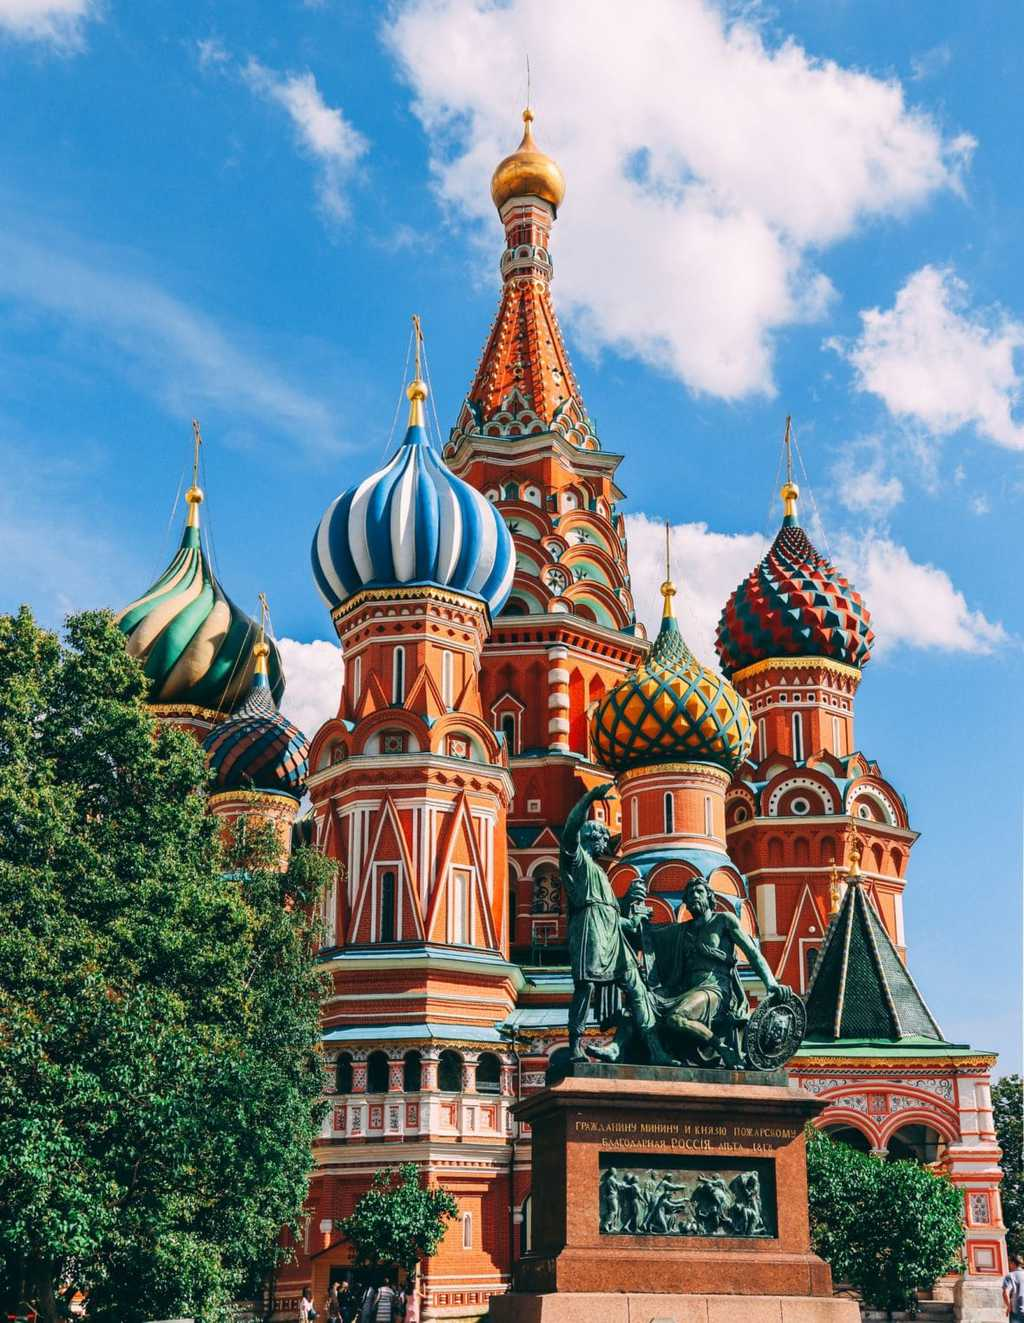 Photograph of Russian buildings